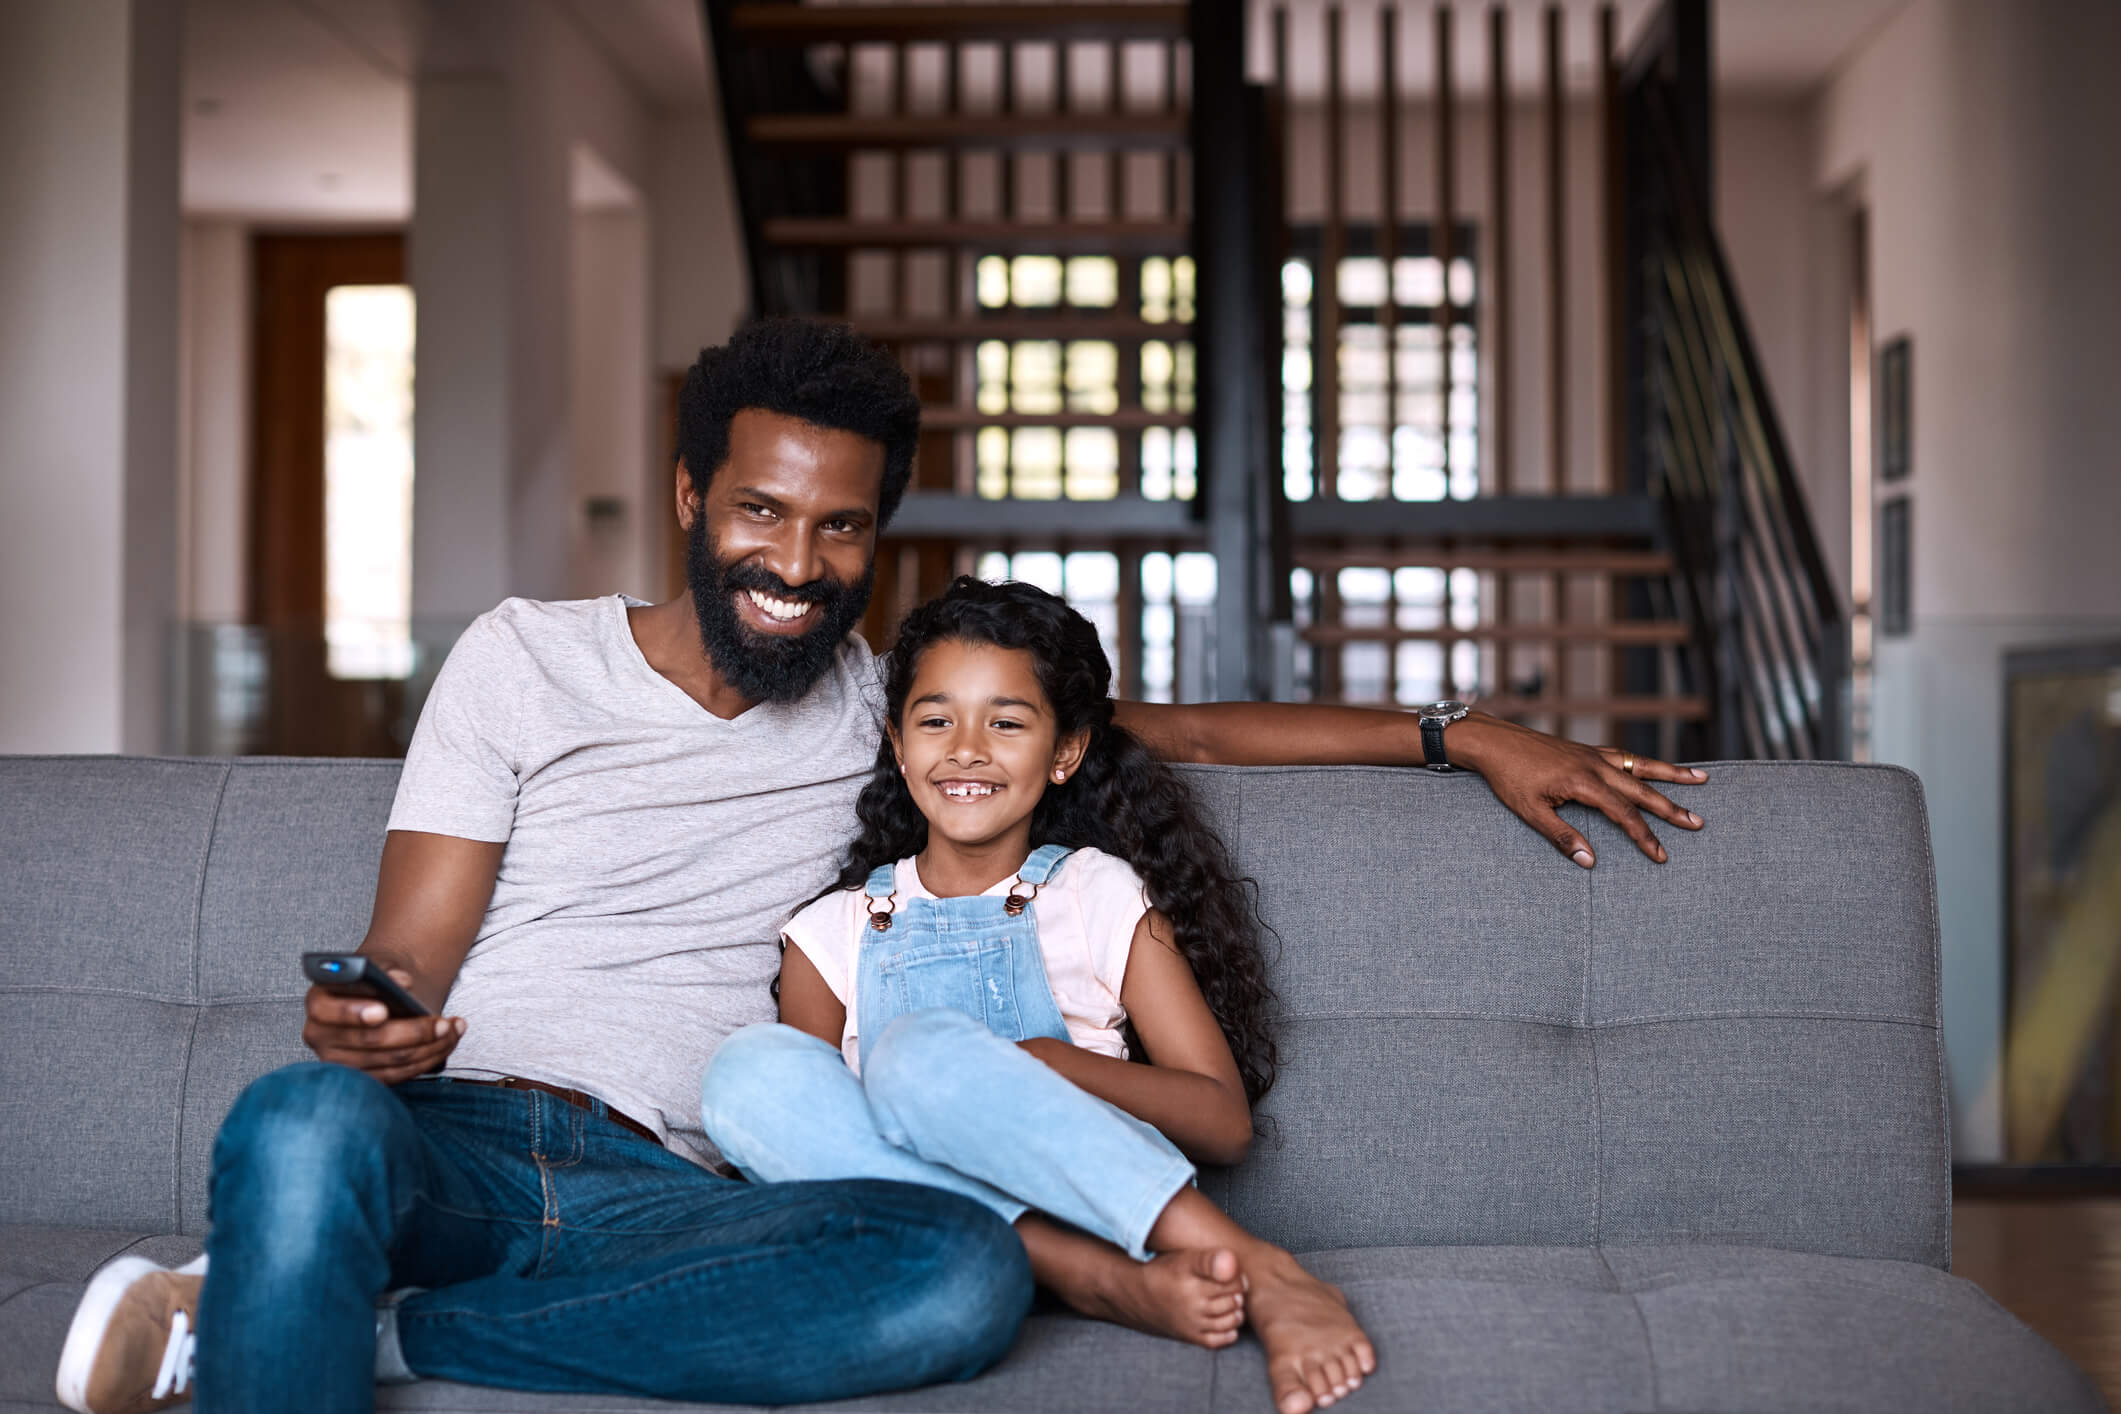 Dad and daughter sitting and smiling on living room couch watching TV